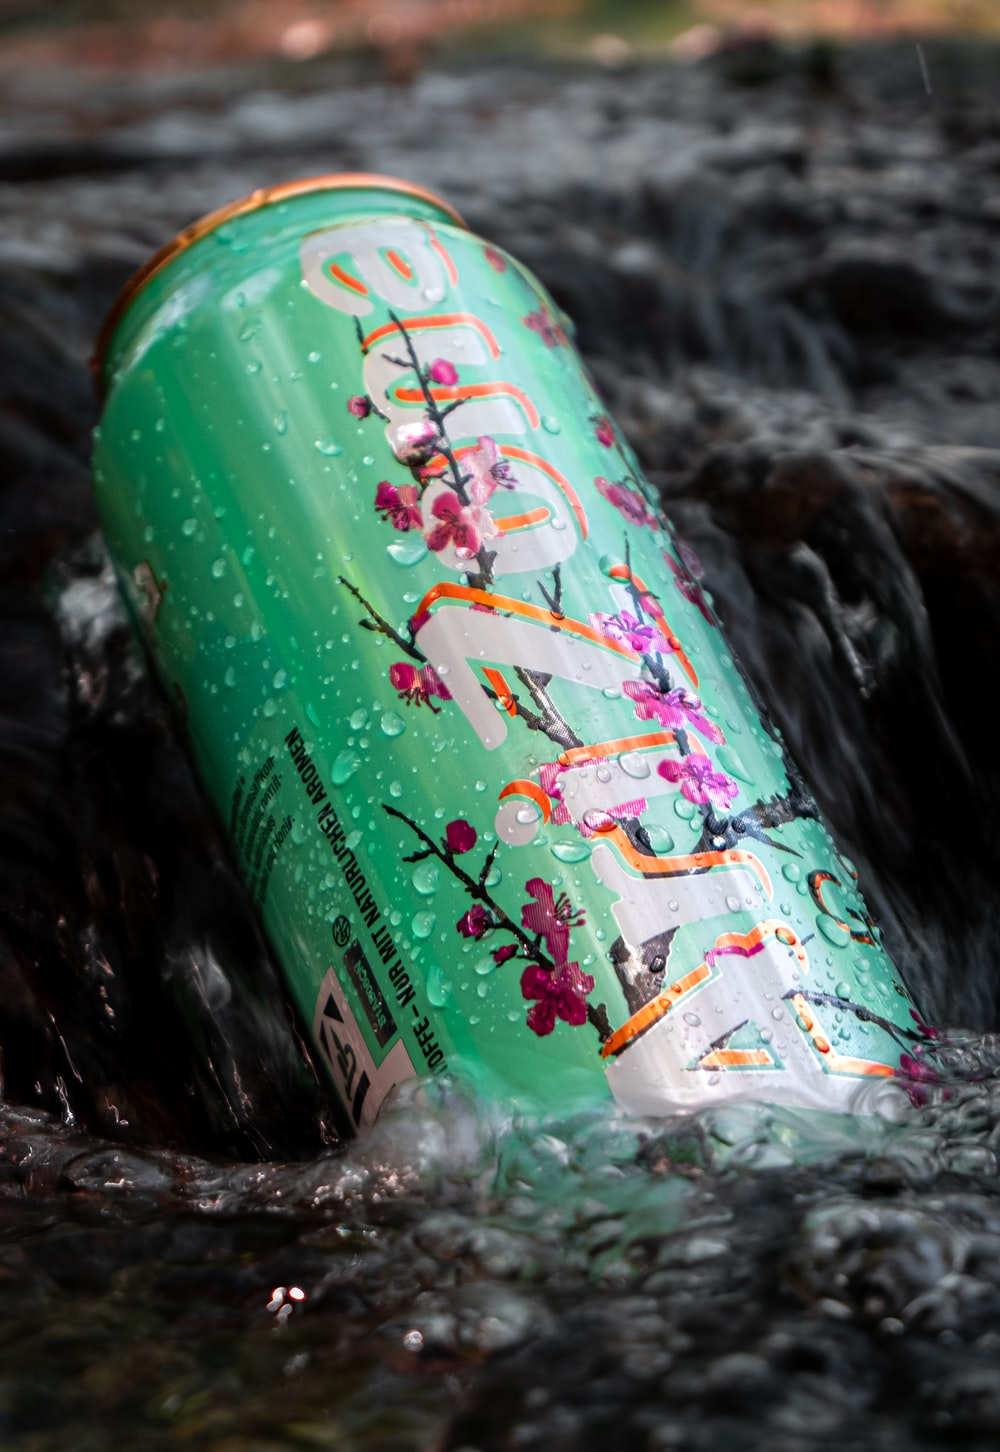 green and red labeled can